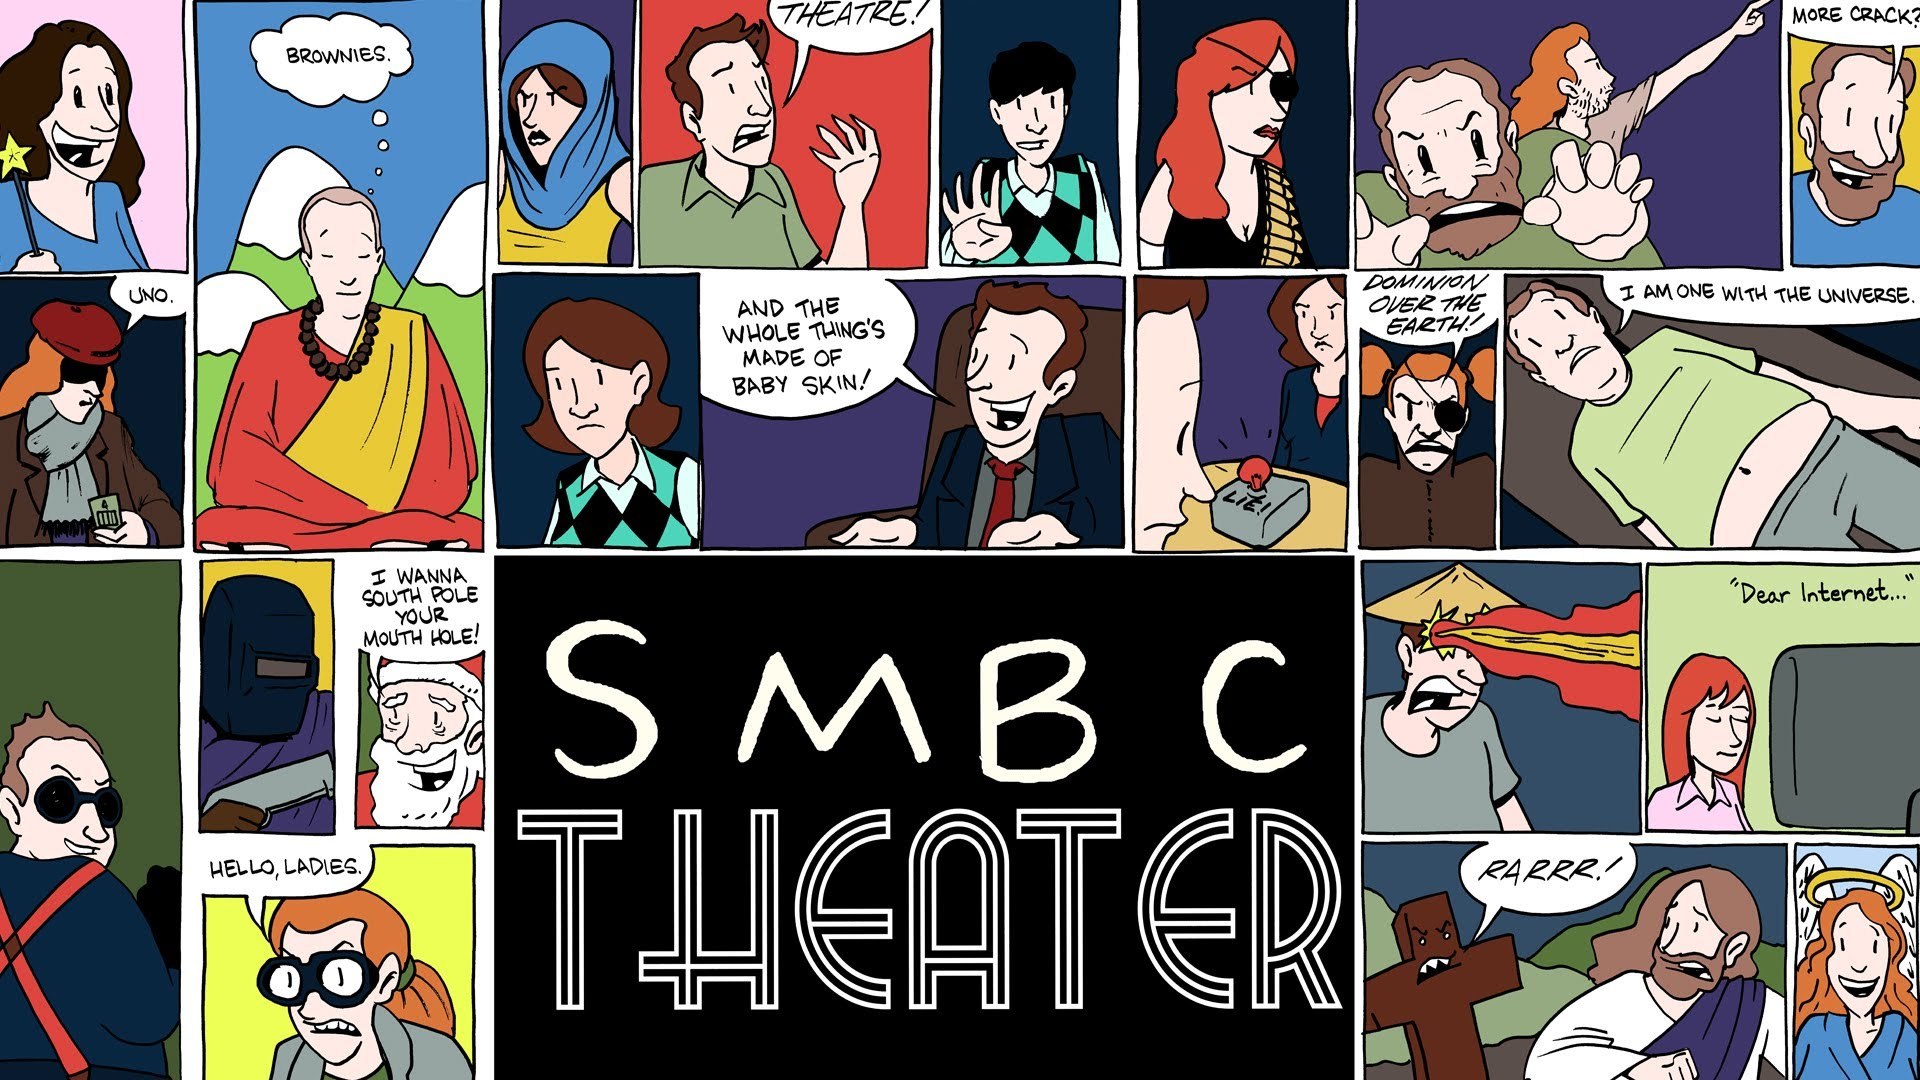 smbc theater dating Dating solutions - smbc theater smbc theater loading unsubscribe from smbc theater cancel unsubscribe working subscribe subscribed unsubscribe 79k loading.